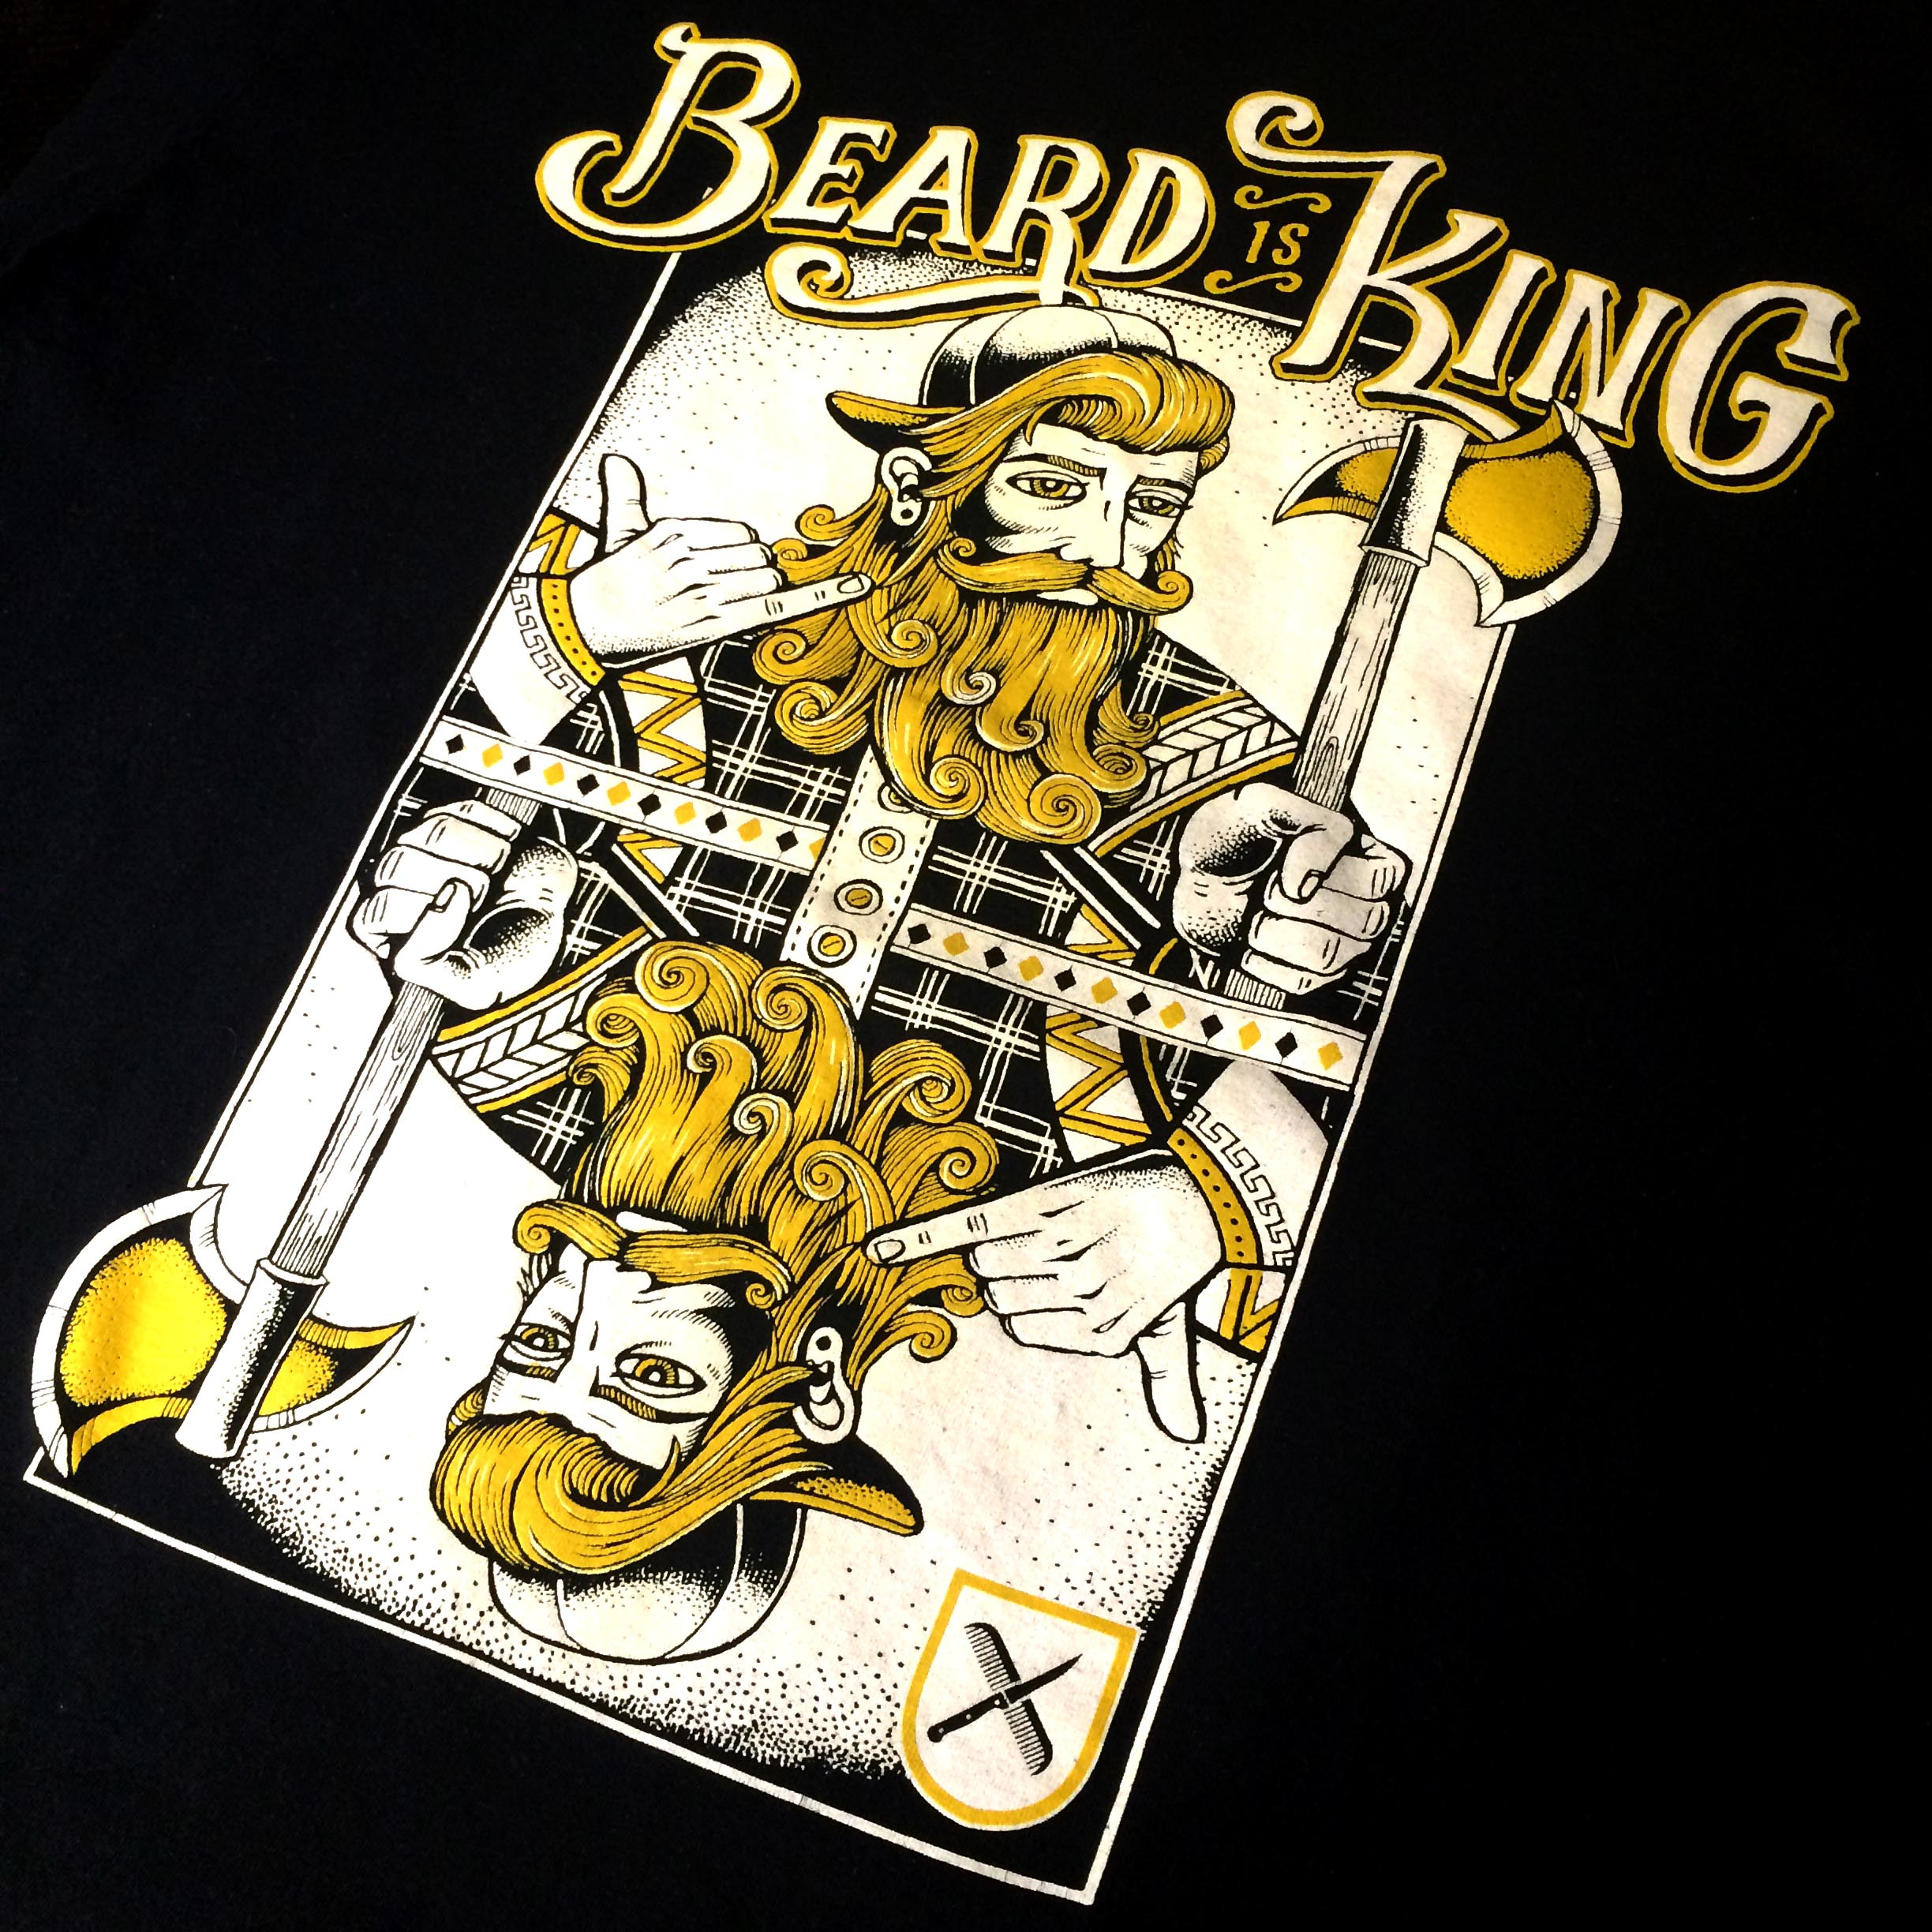 Steak and beards TShirt Print